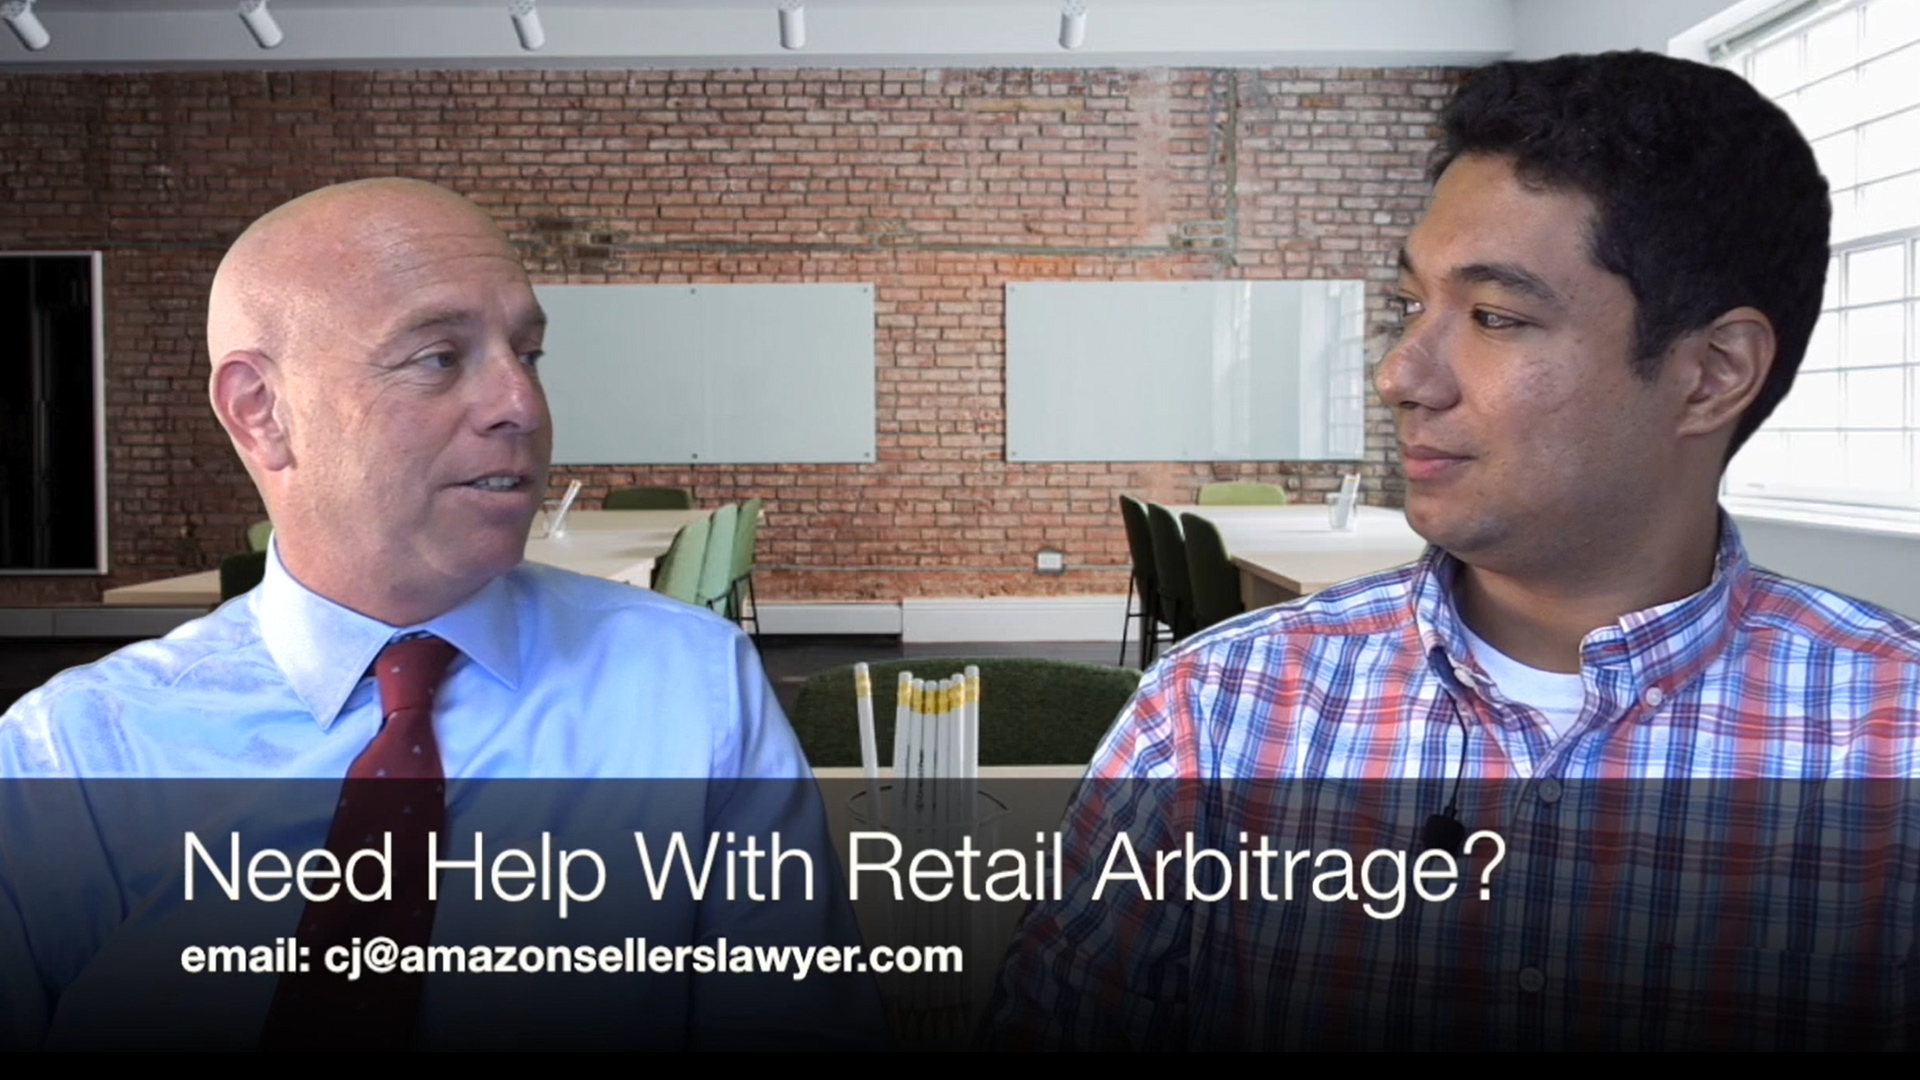 Inauthentic Reinstatement for a Retail Arbitrage Seller